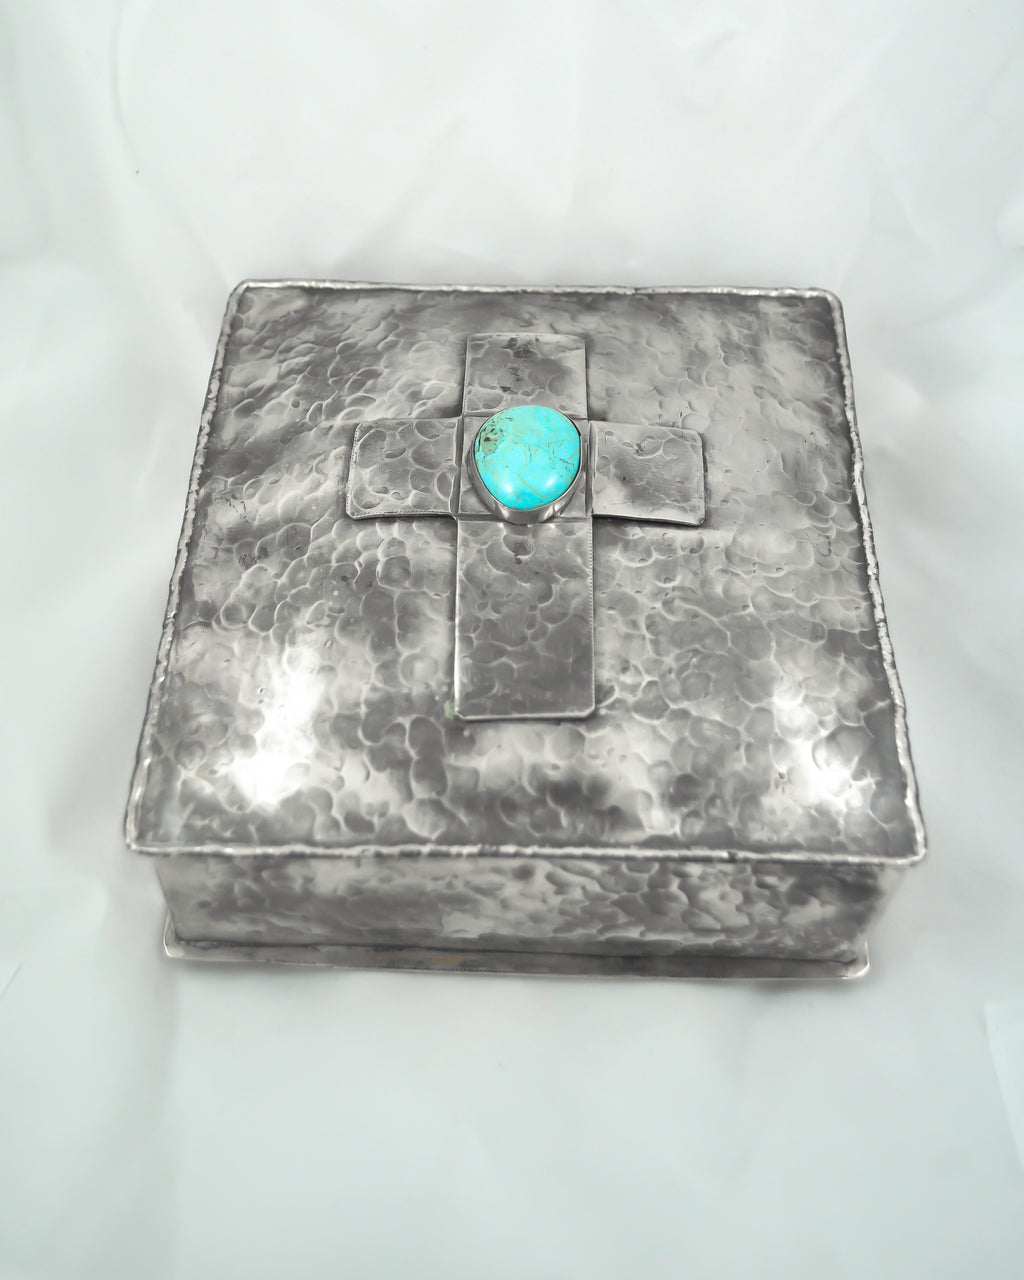 SQUARE NICKEL SILVER BOX WITH DIMPLES AND CROSS